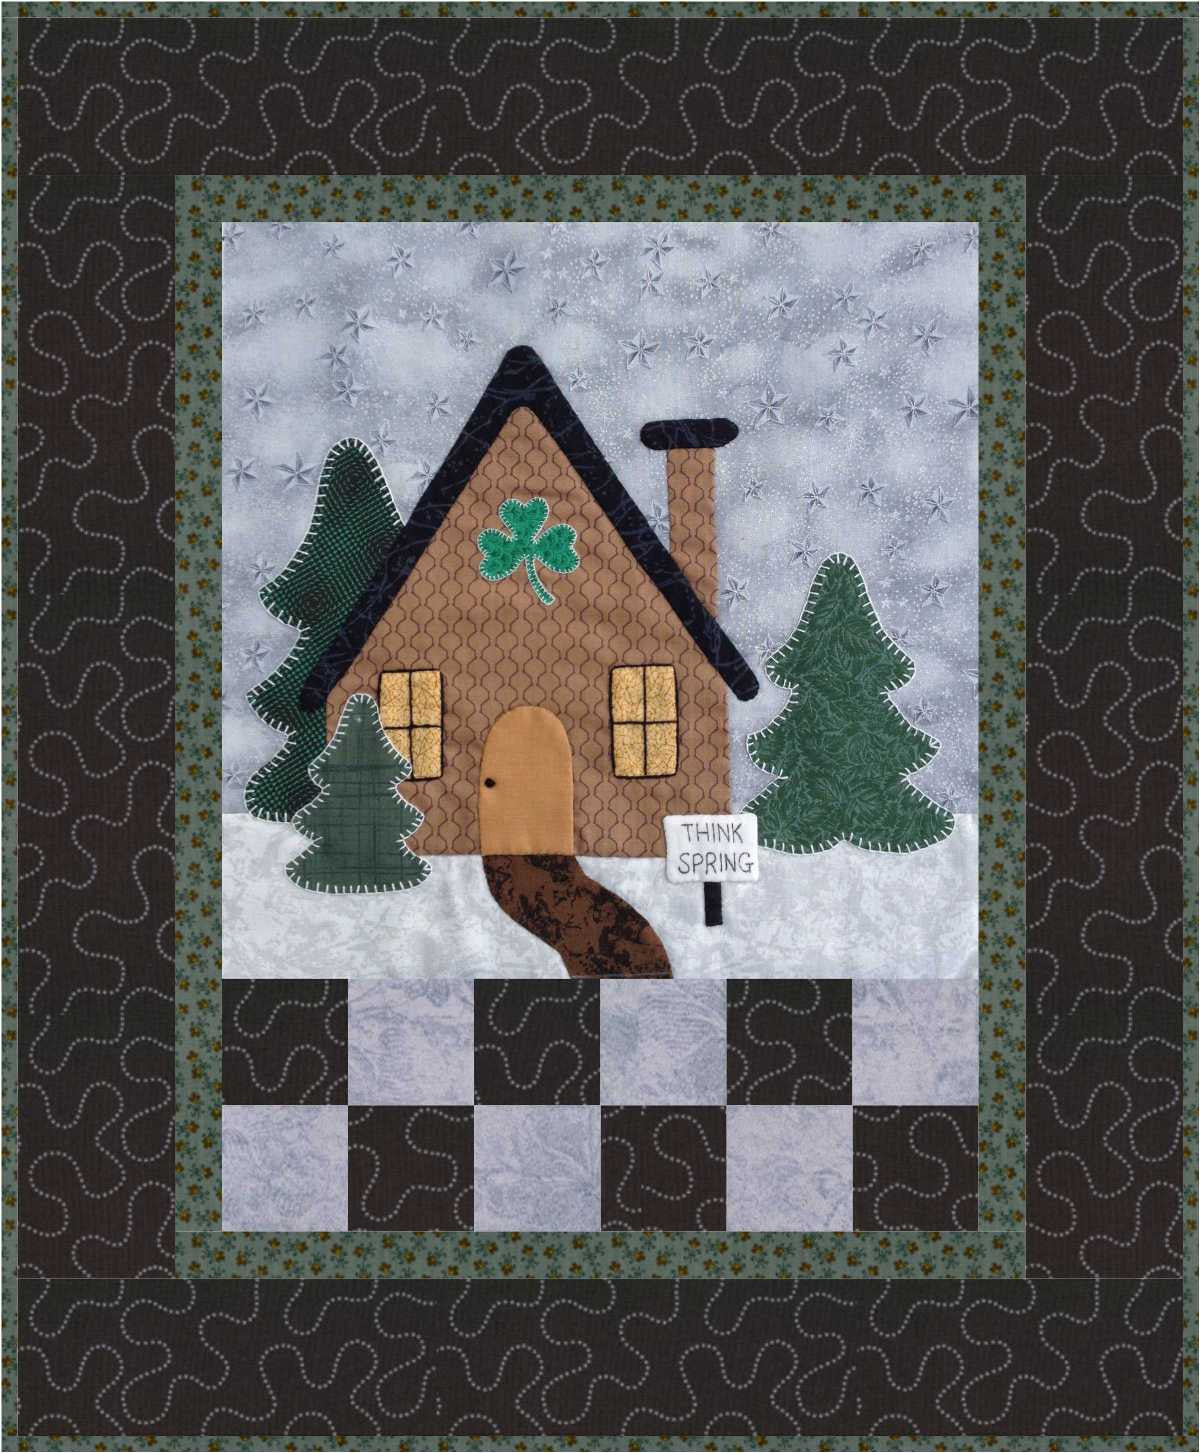 Seasonal Sampler Block of the Month